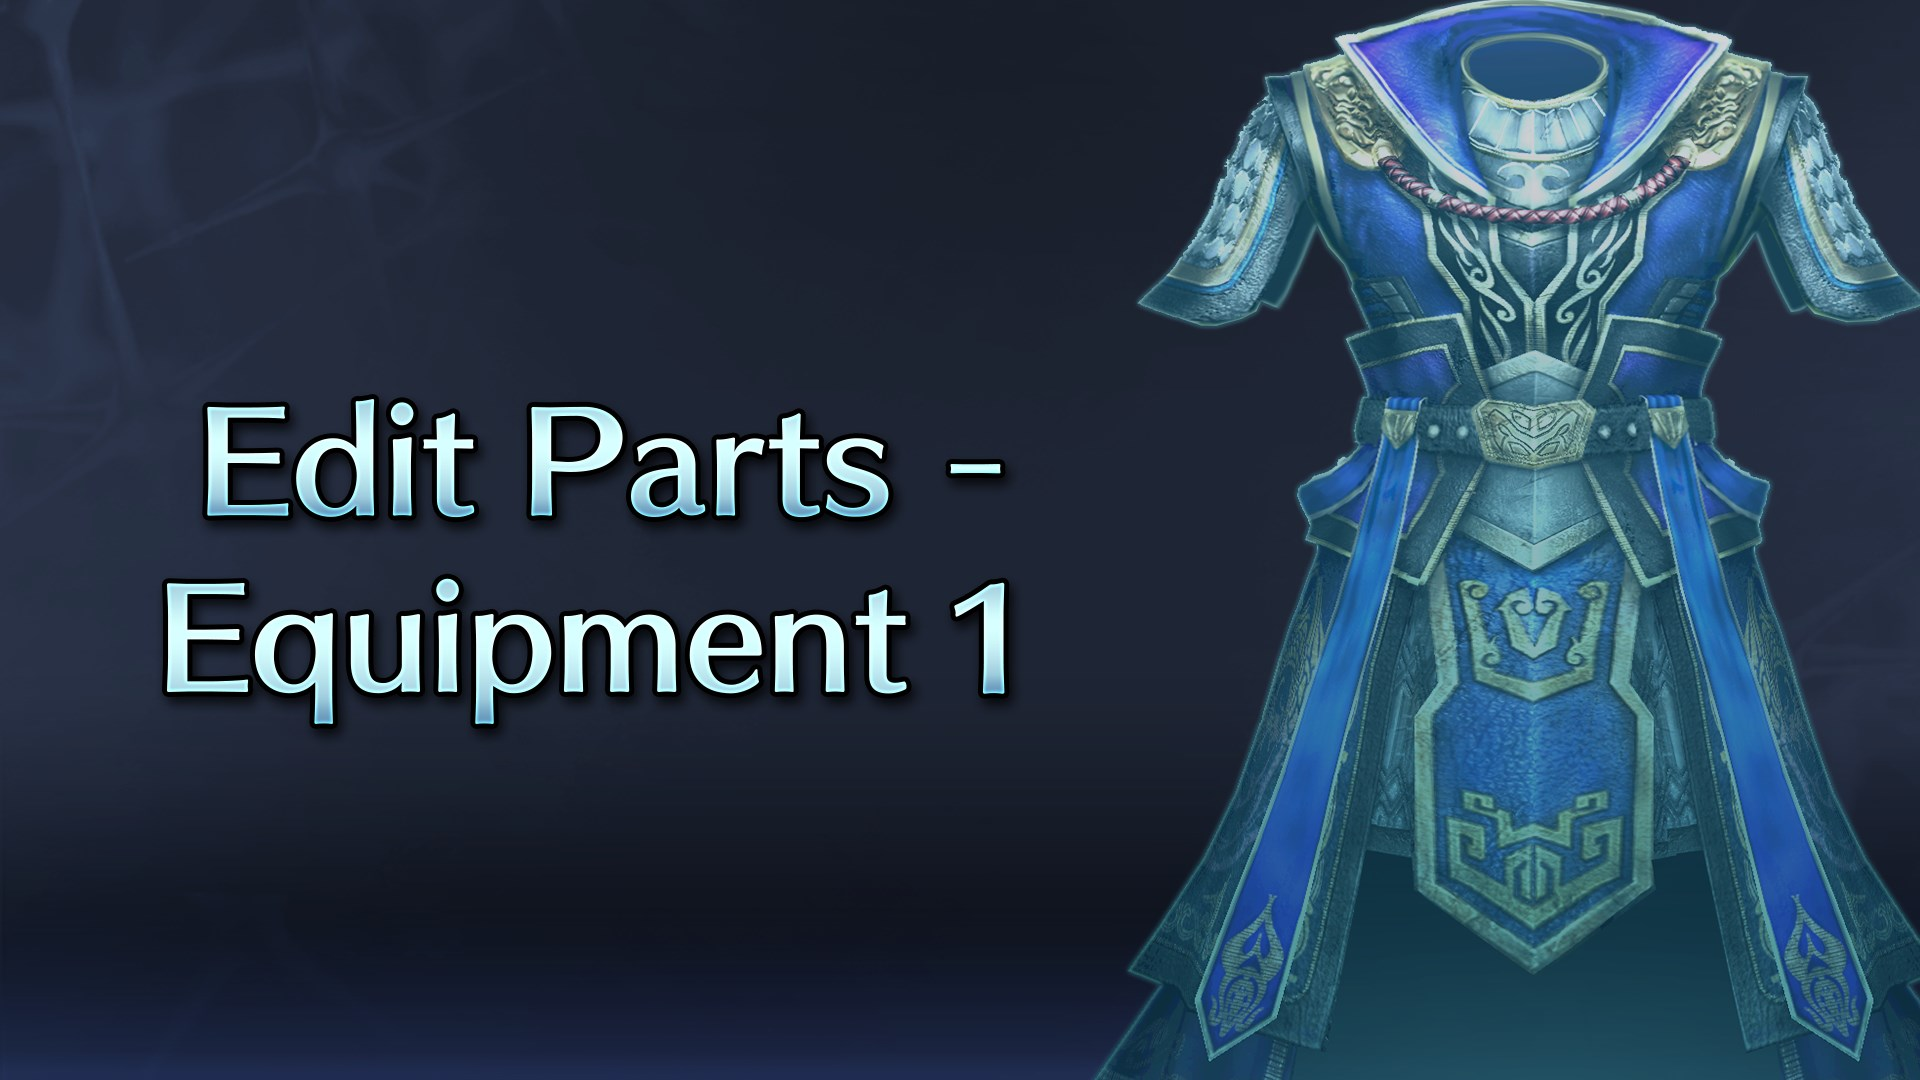 Edit Parts - Equipment 1